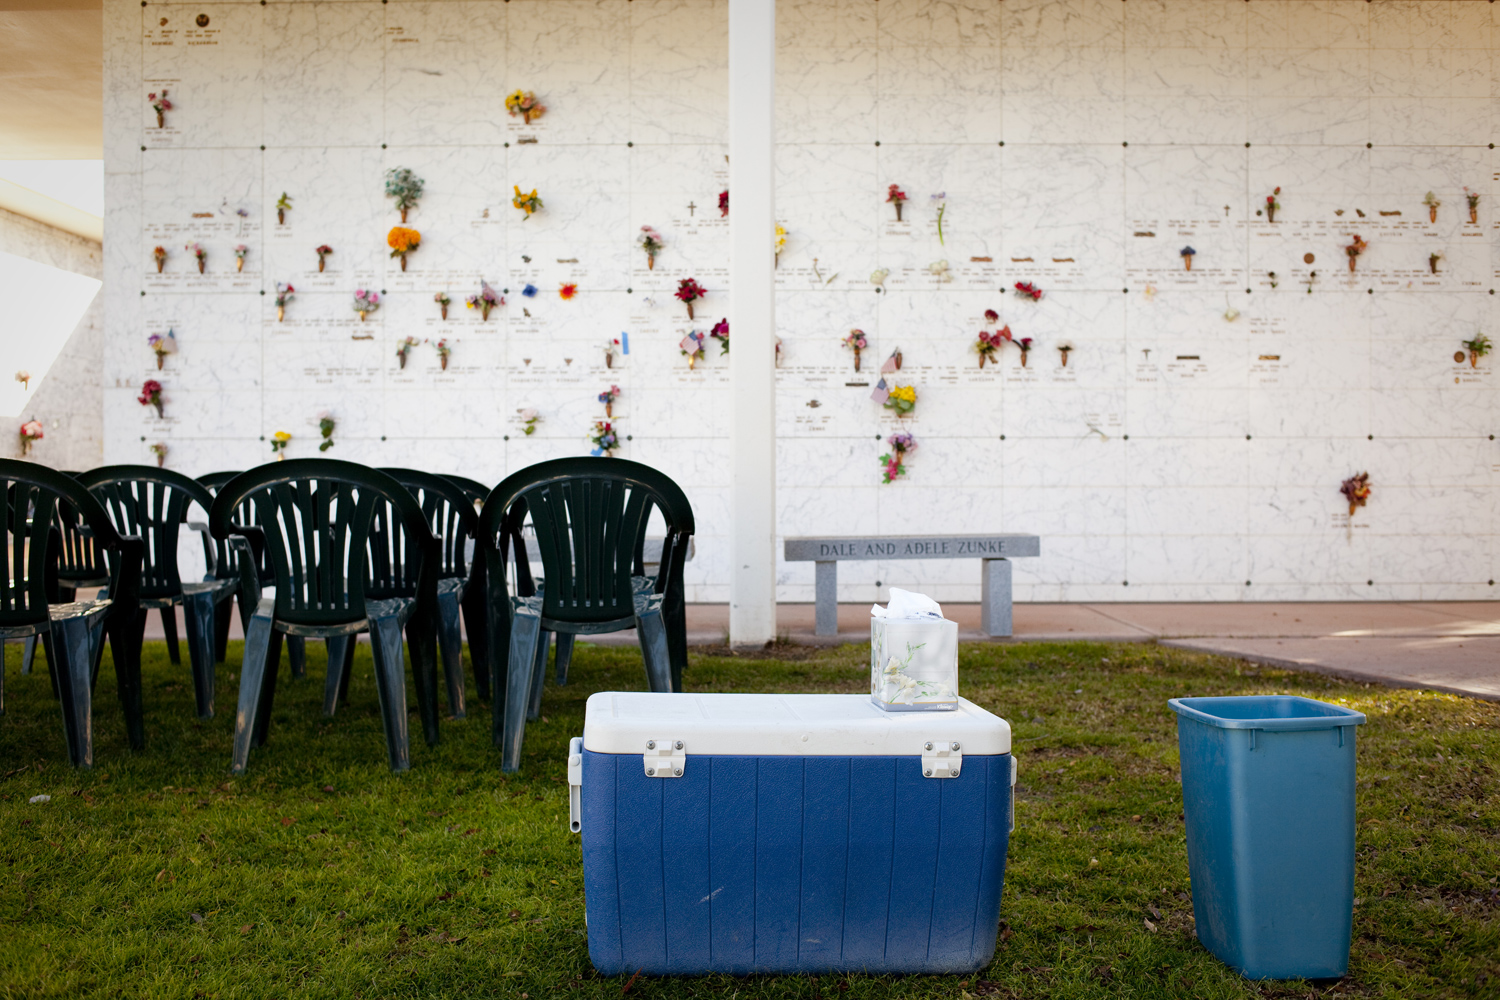 Chairs await the mourners of Arthur Scheffelman before his funeral at the Sunland Memorial Park in Sun City, Arizona on December 14, 2009.